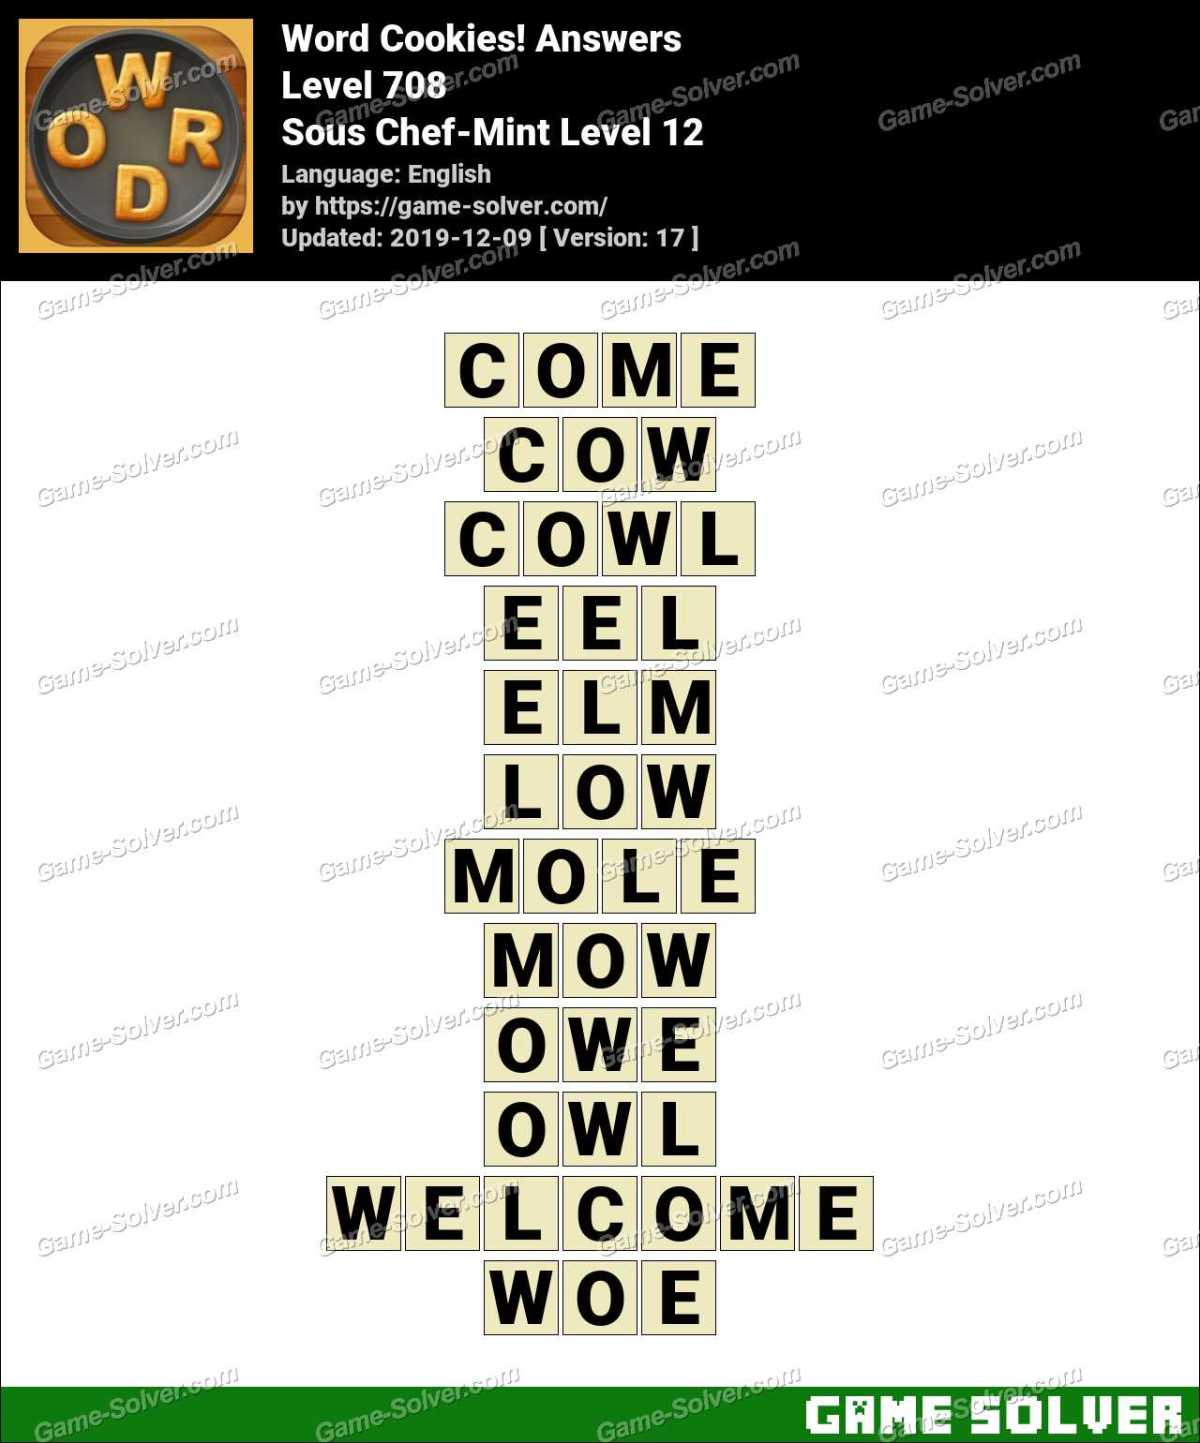 Word Cookies Sous Chef-Mint Level 12 Answers